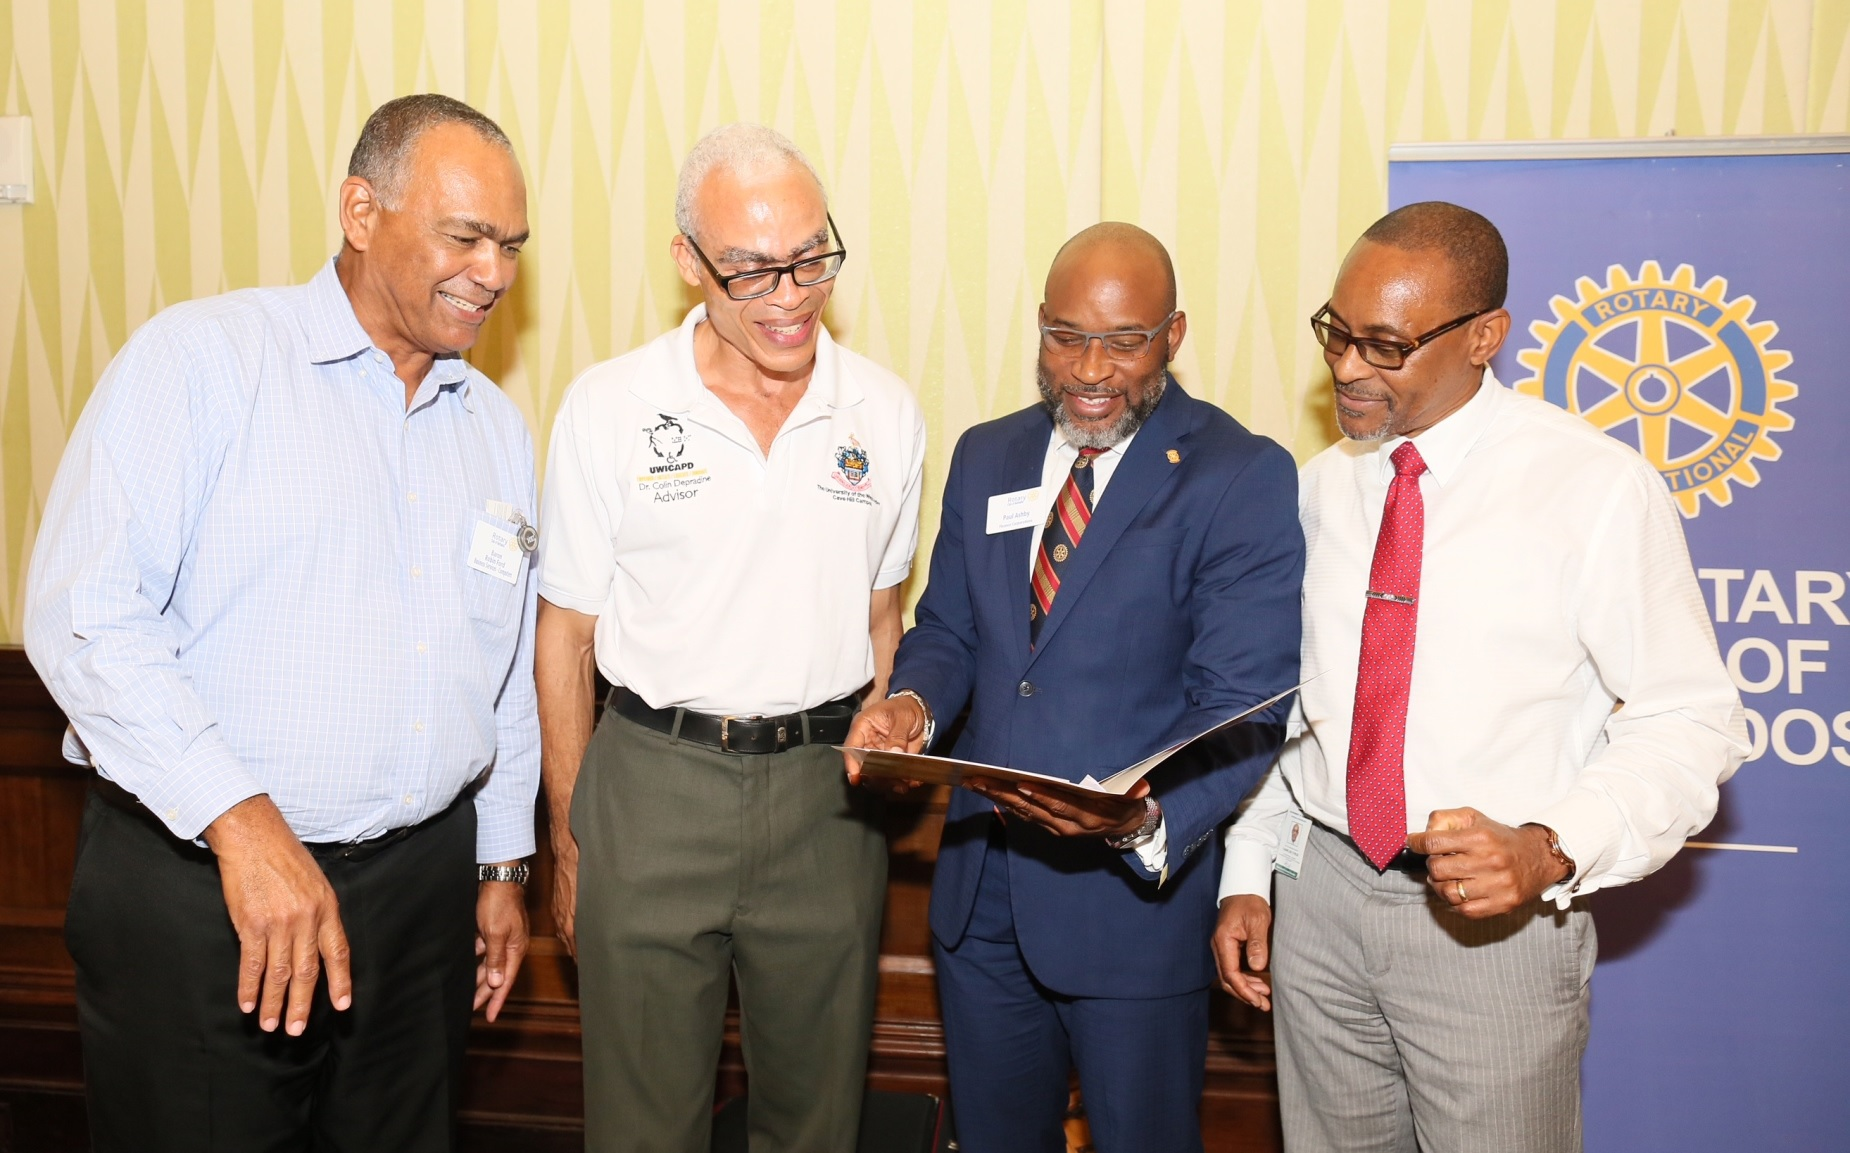 (L-R) International Business Machine (IBM) Sales Manager, Robin Ford; Dean of the faculty of Science and Technology at the University of the West Indies Cave Hill Campus, Dr Colin Depradine; President of Rotary Club of Barbados, Paul Ashby; Director of The National Council for Science and Technology (NCST) (Ag.),  Charles Cyrus.